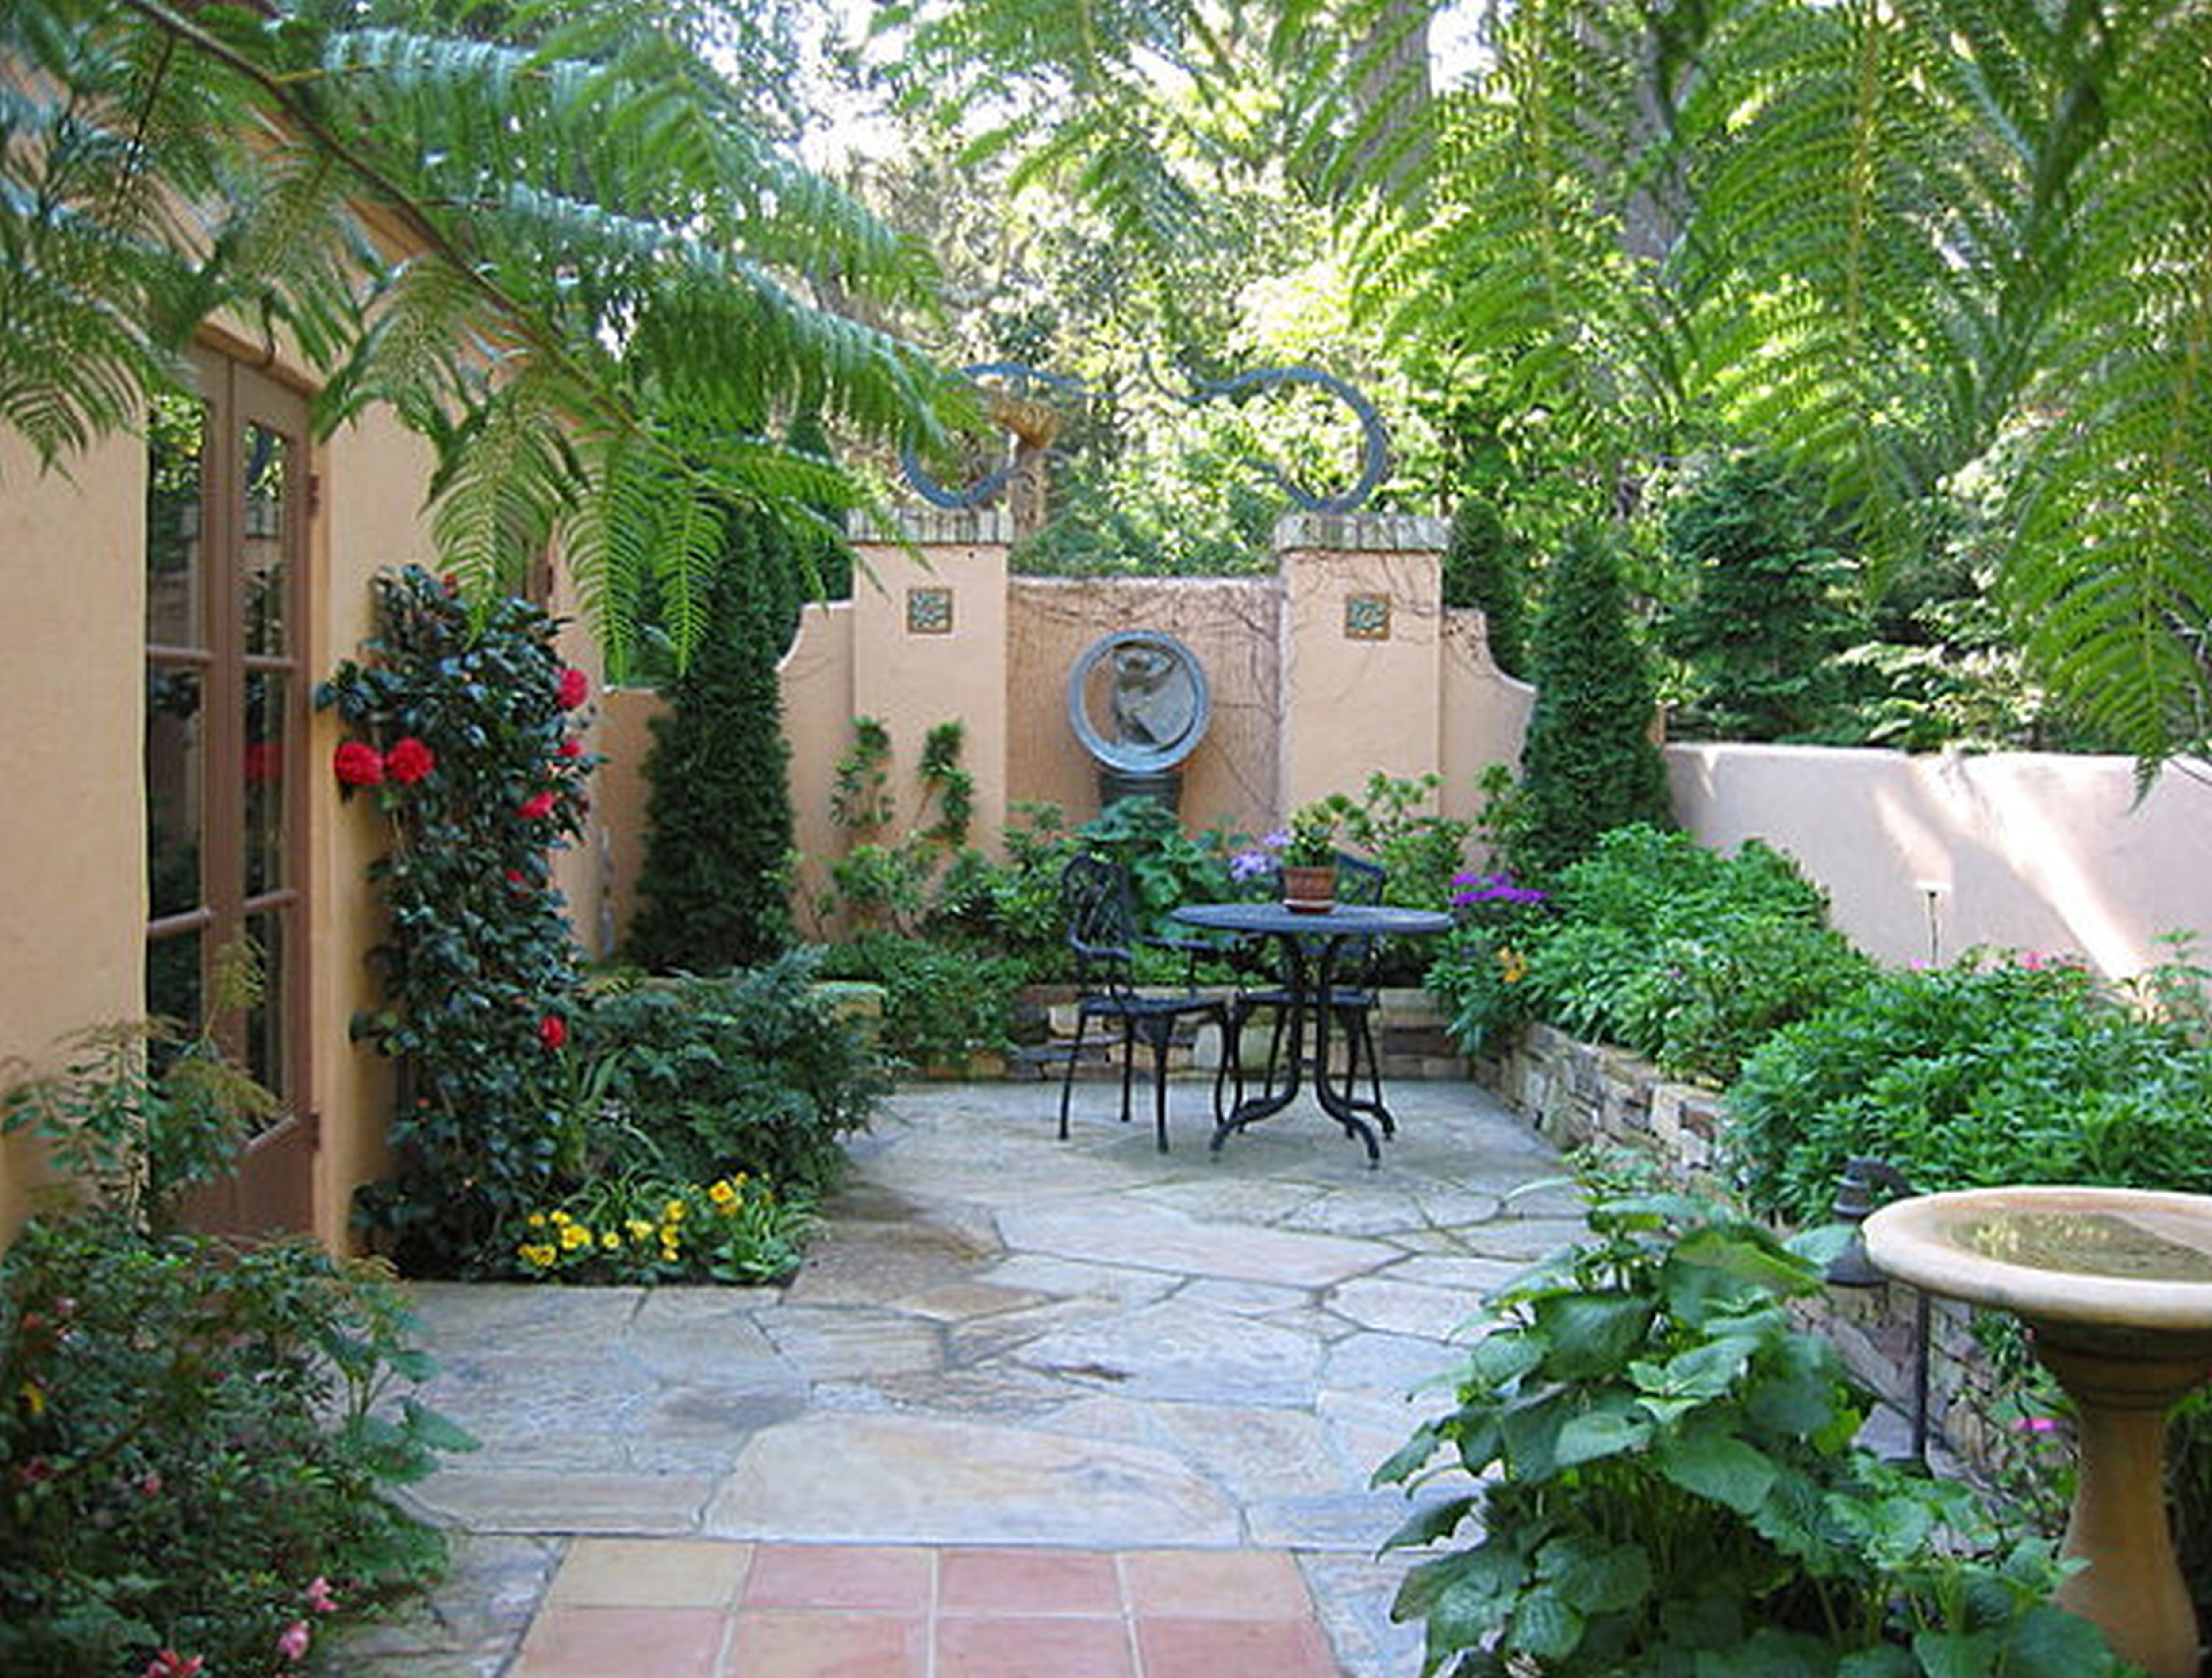 Tropical Landscaping Ideas For Small Yards Southern Homes With with regard to Small Tropical Backyard Ideas